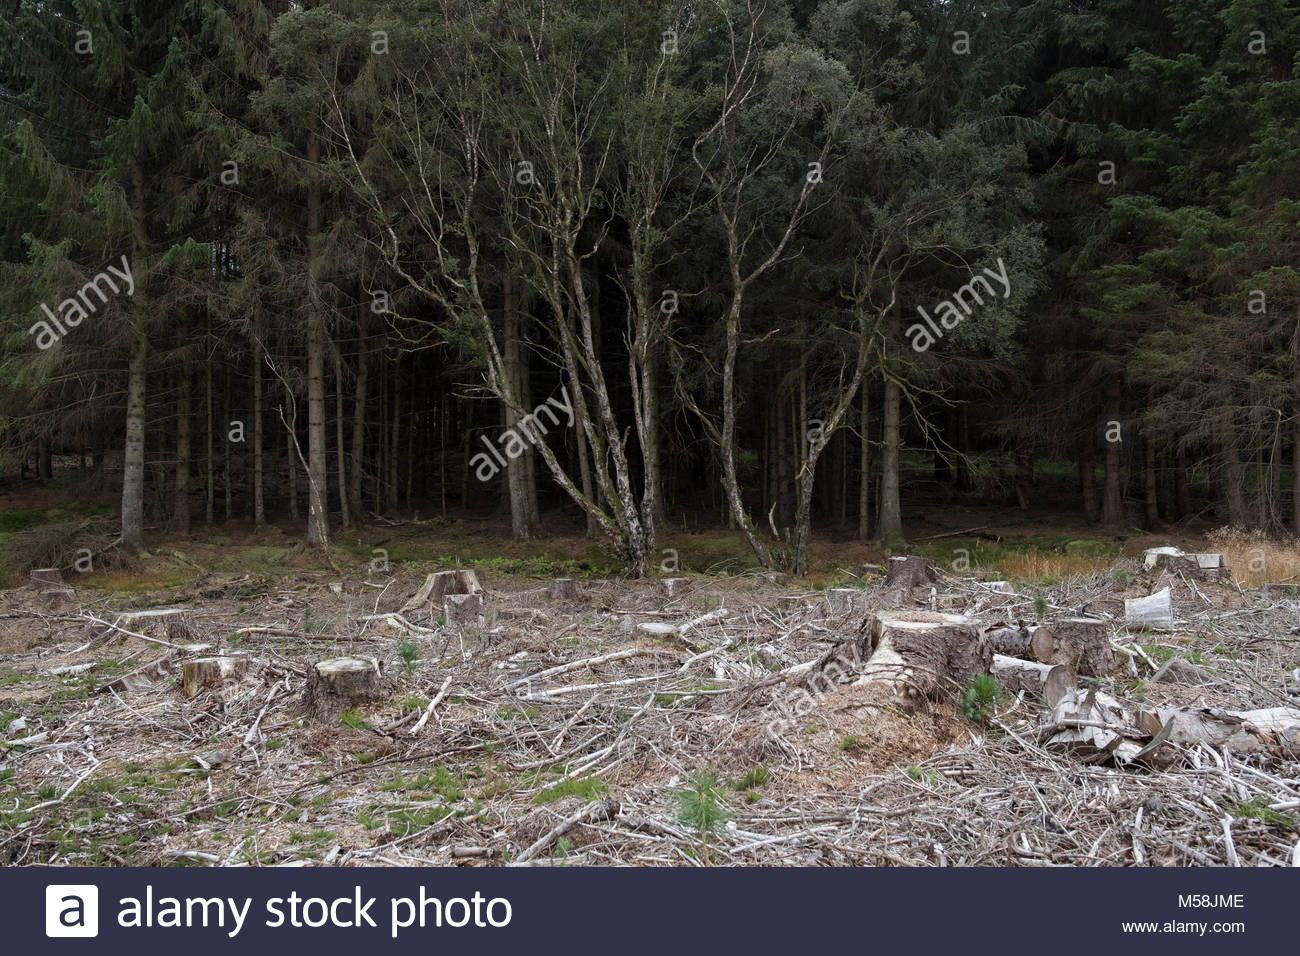 Deforestation in Northumberland - Stock Image